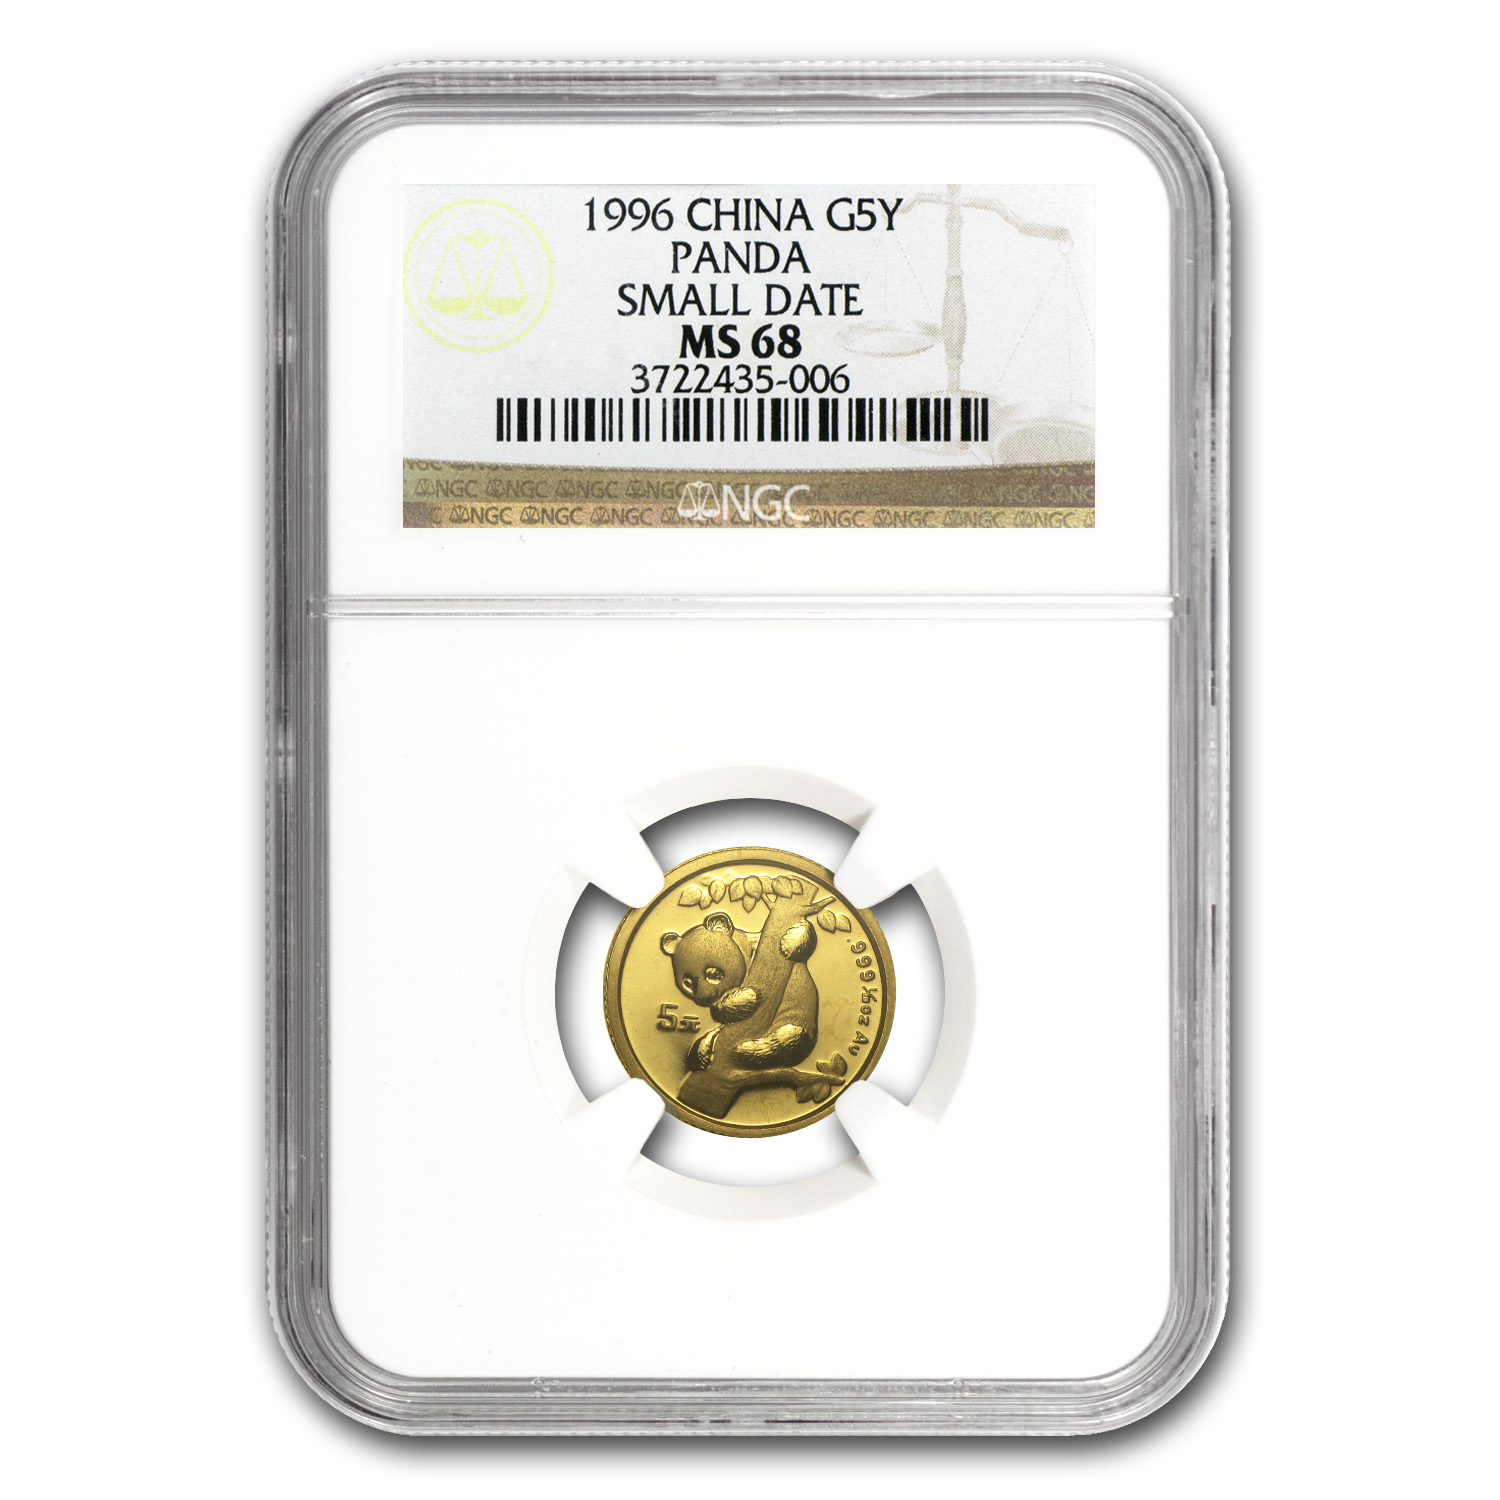 1996 China 1/20 oz Gold Panda Small Date MS-68 NGC